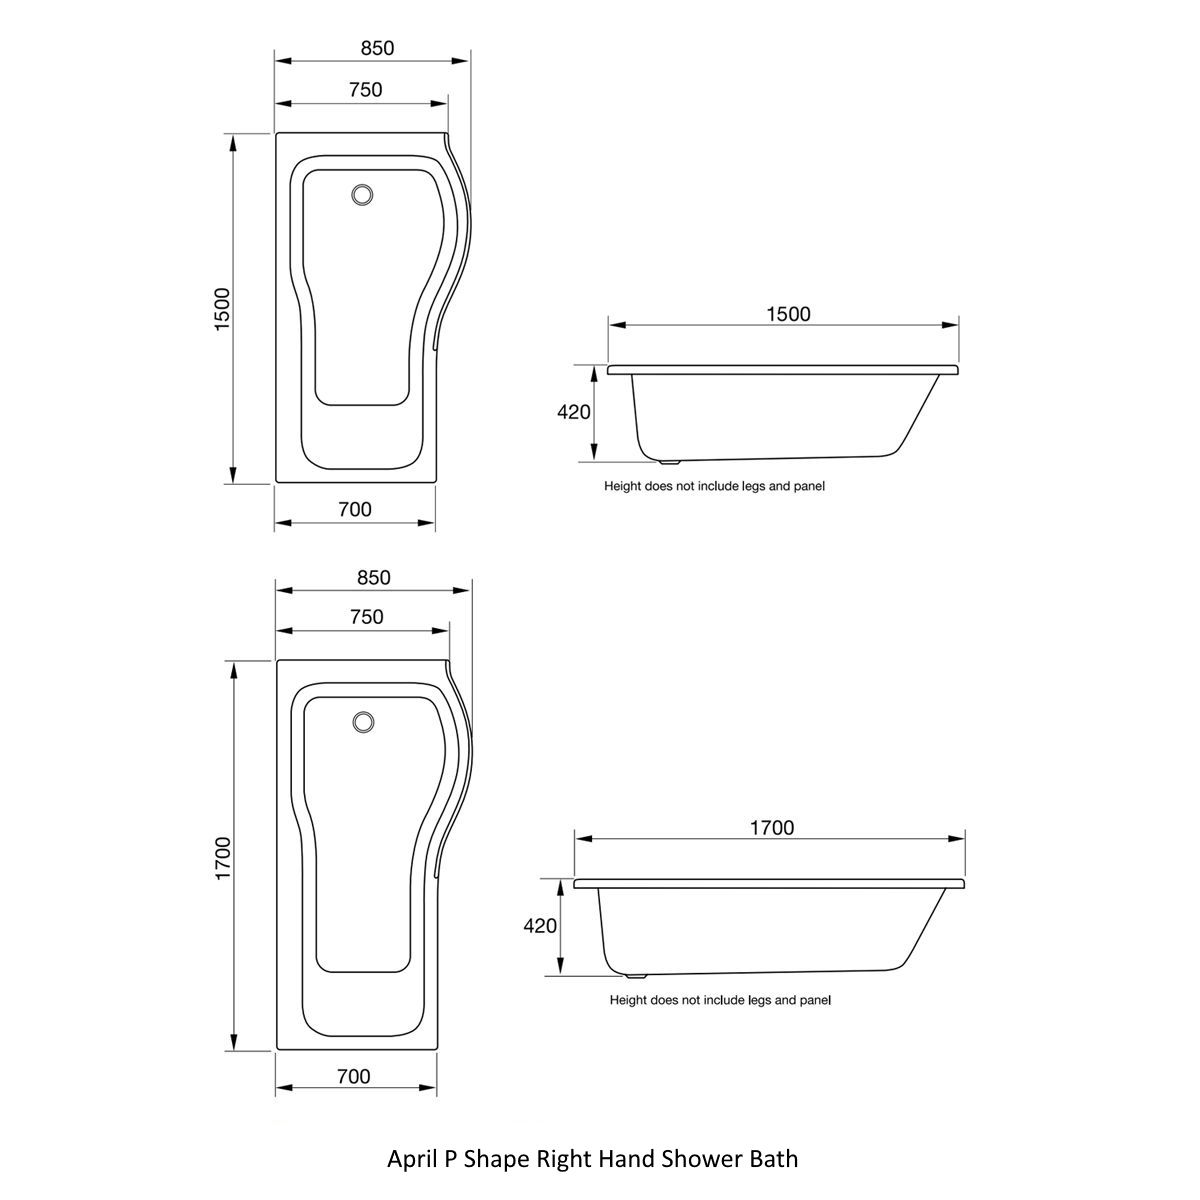 April P Shape Right Hand Shower Bath Drawing Dimensions